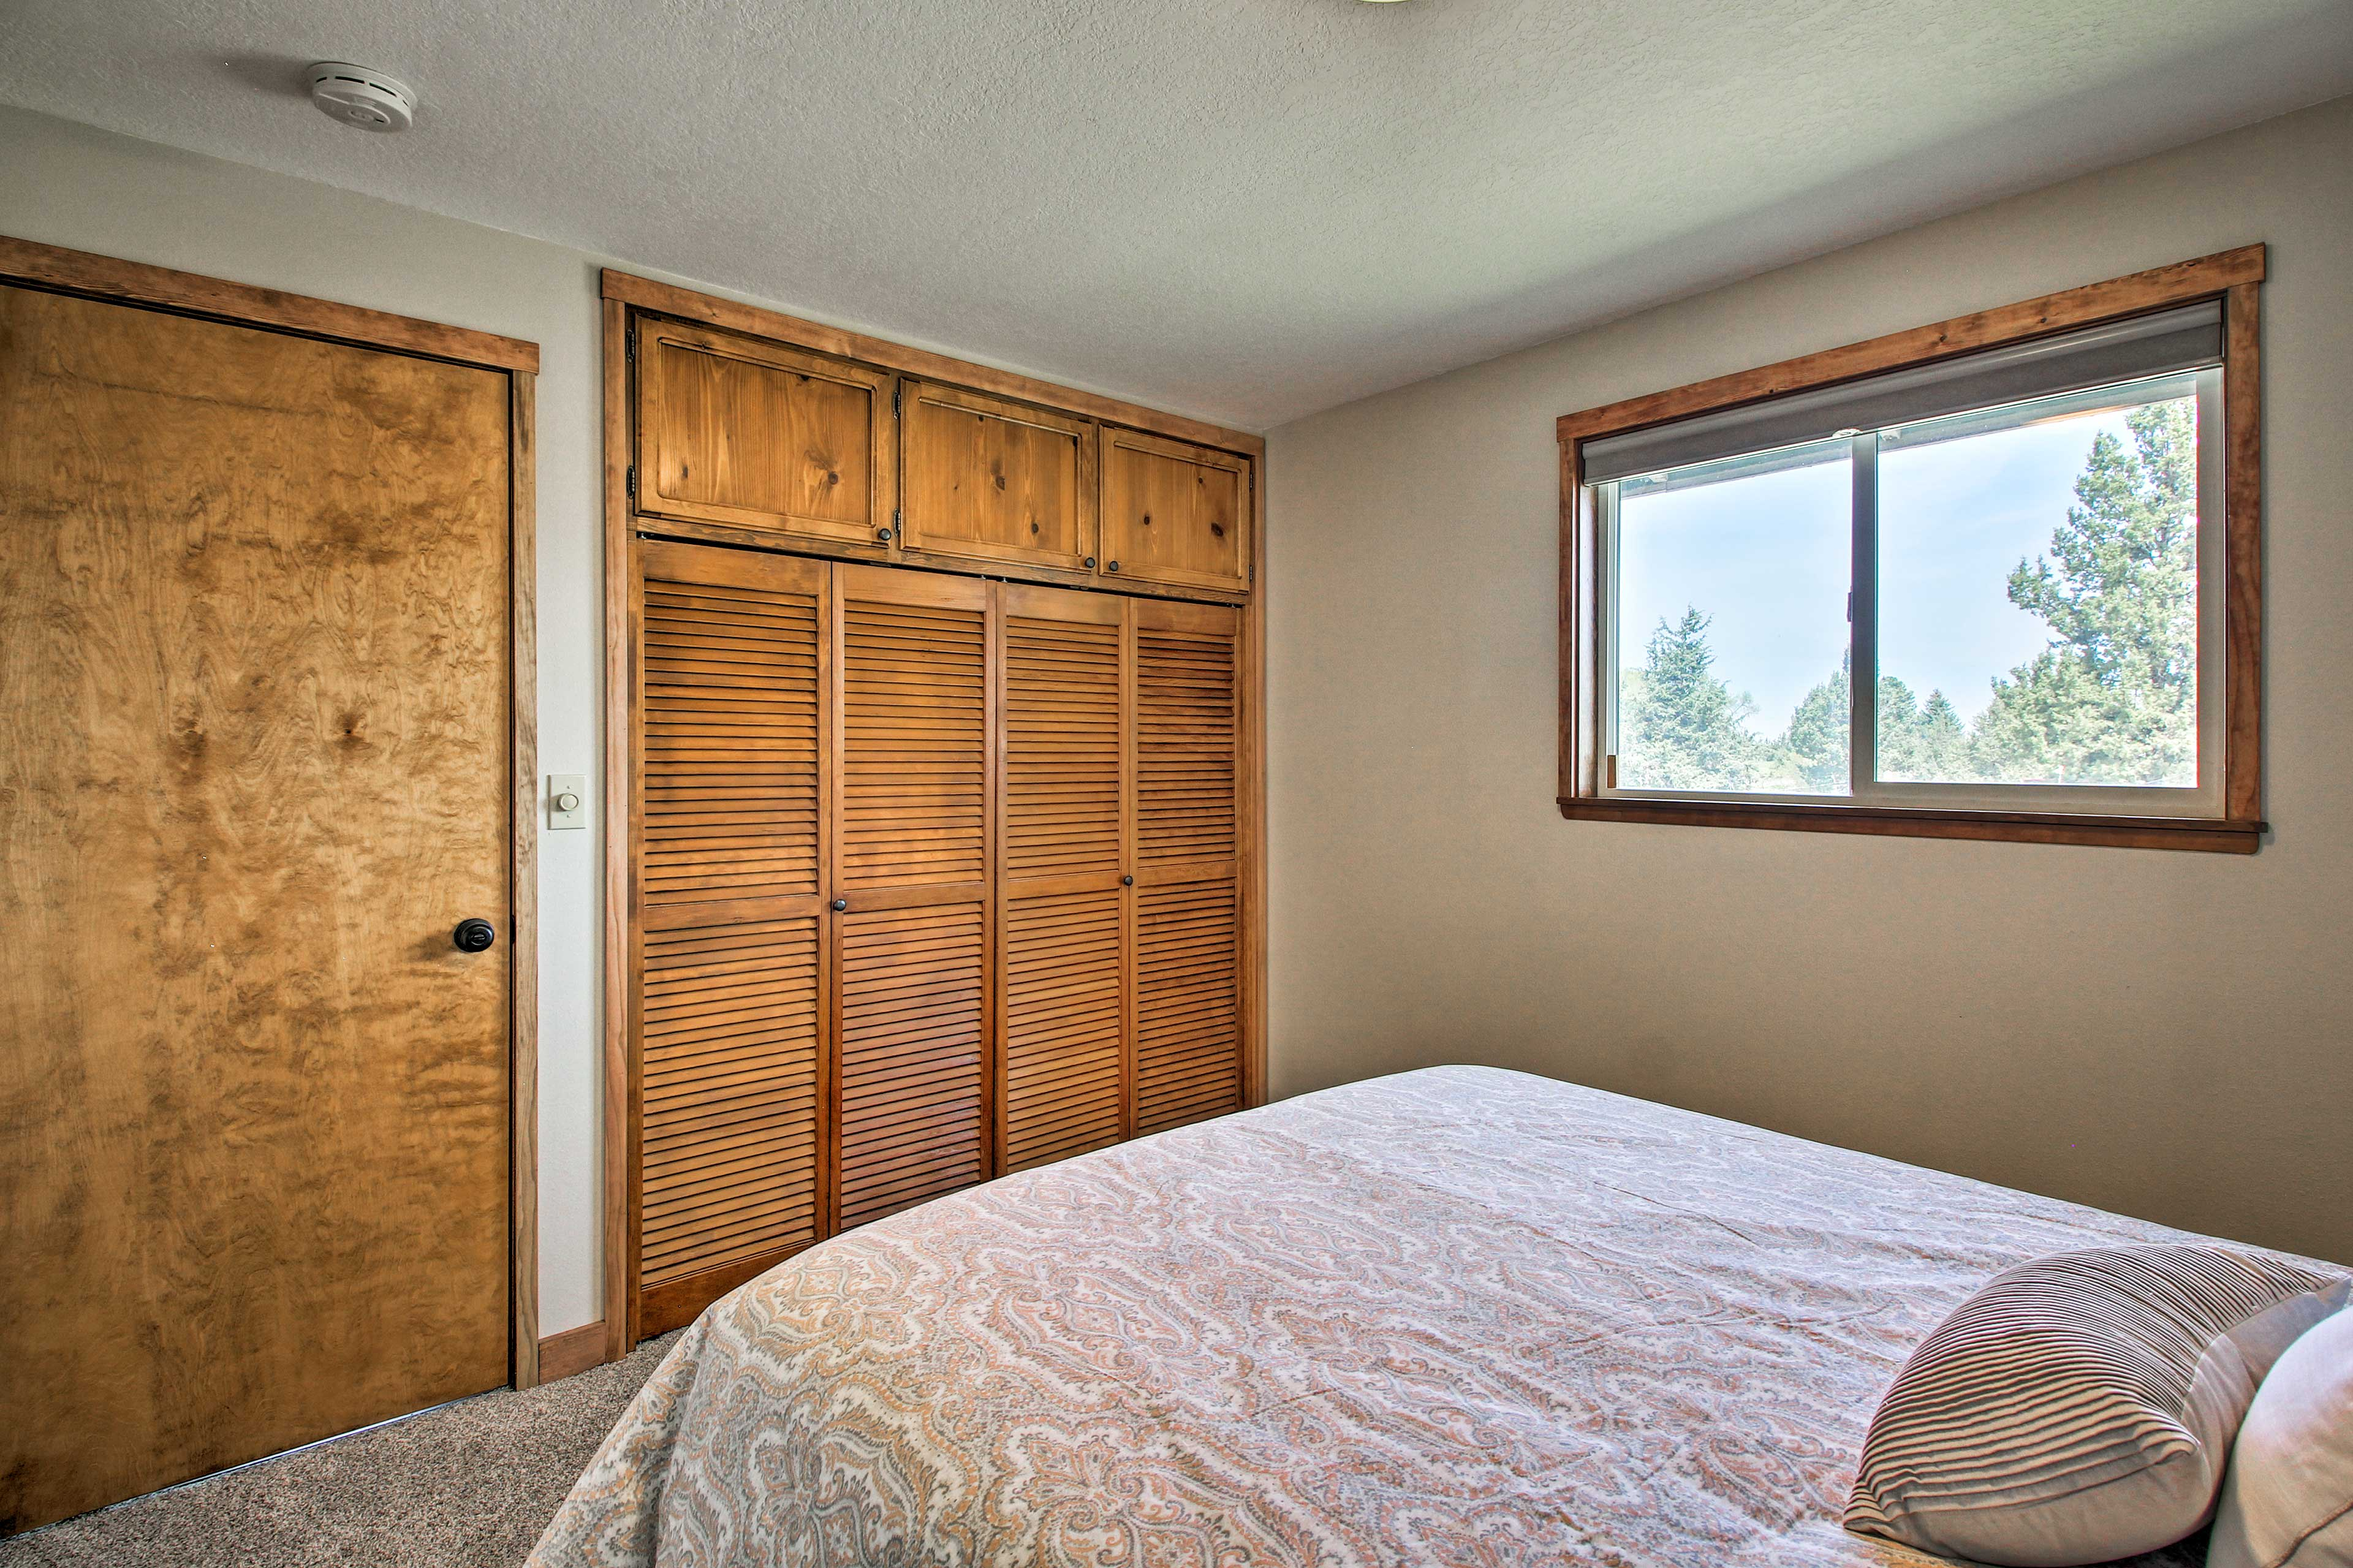 Rise and shine to natural sunlight entering the bedroom.